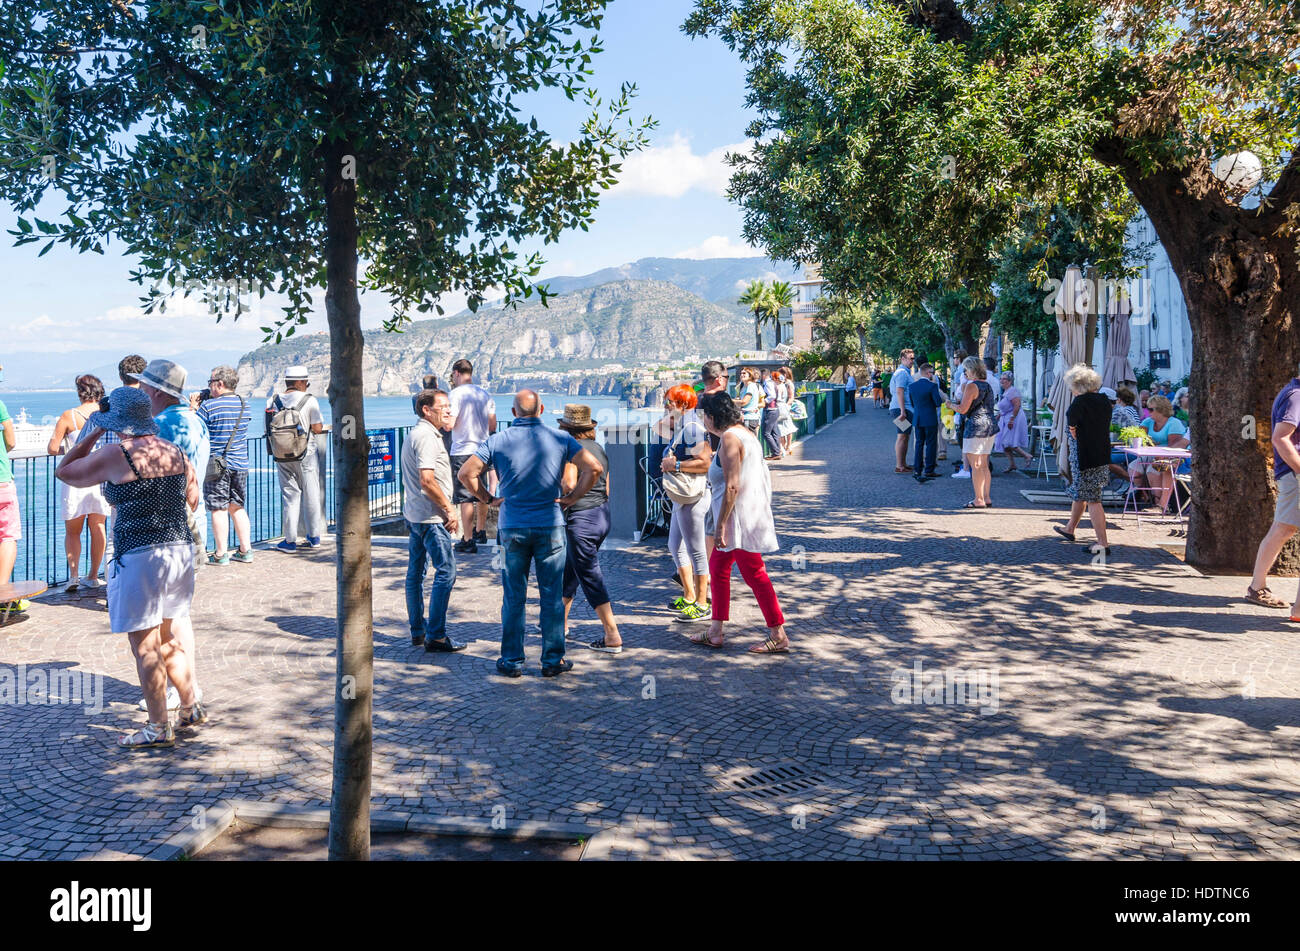 Tourists at the sea front in Villa Comunale Park, Sorrento, Italy, looking at the Gulf of Naples - Stock Image